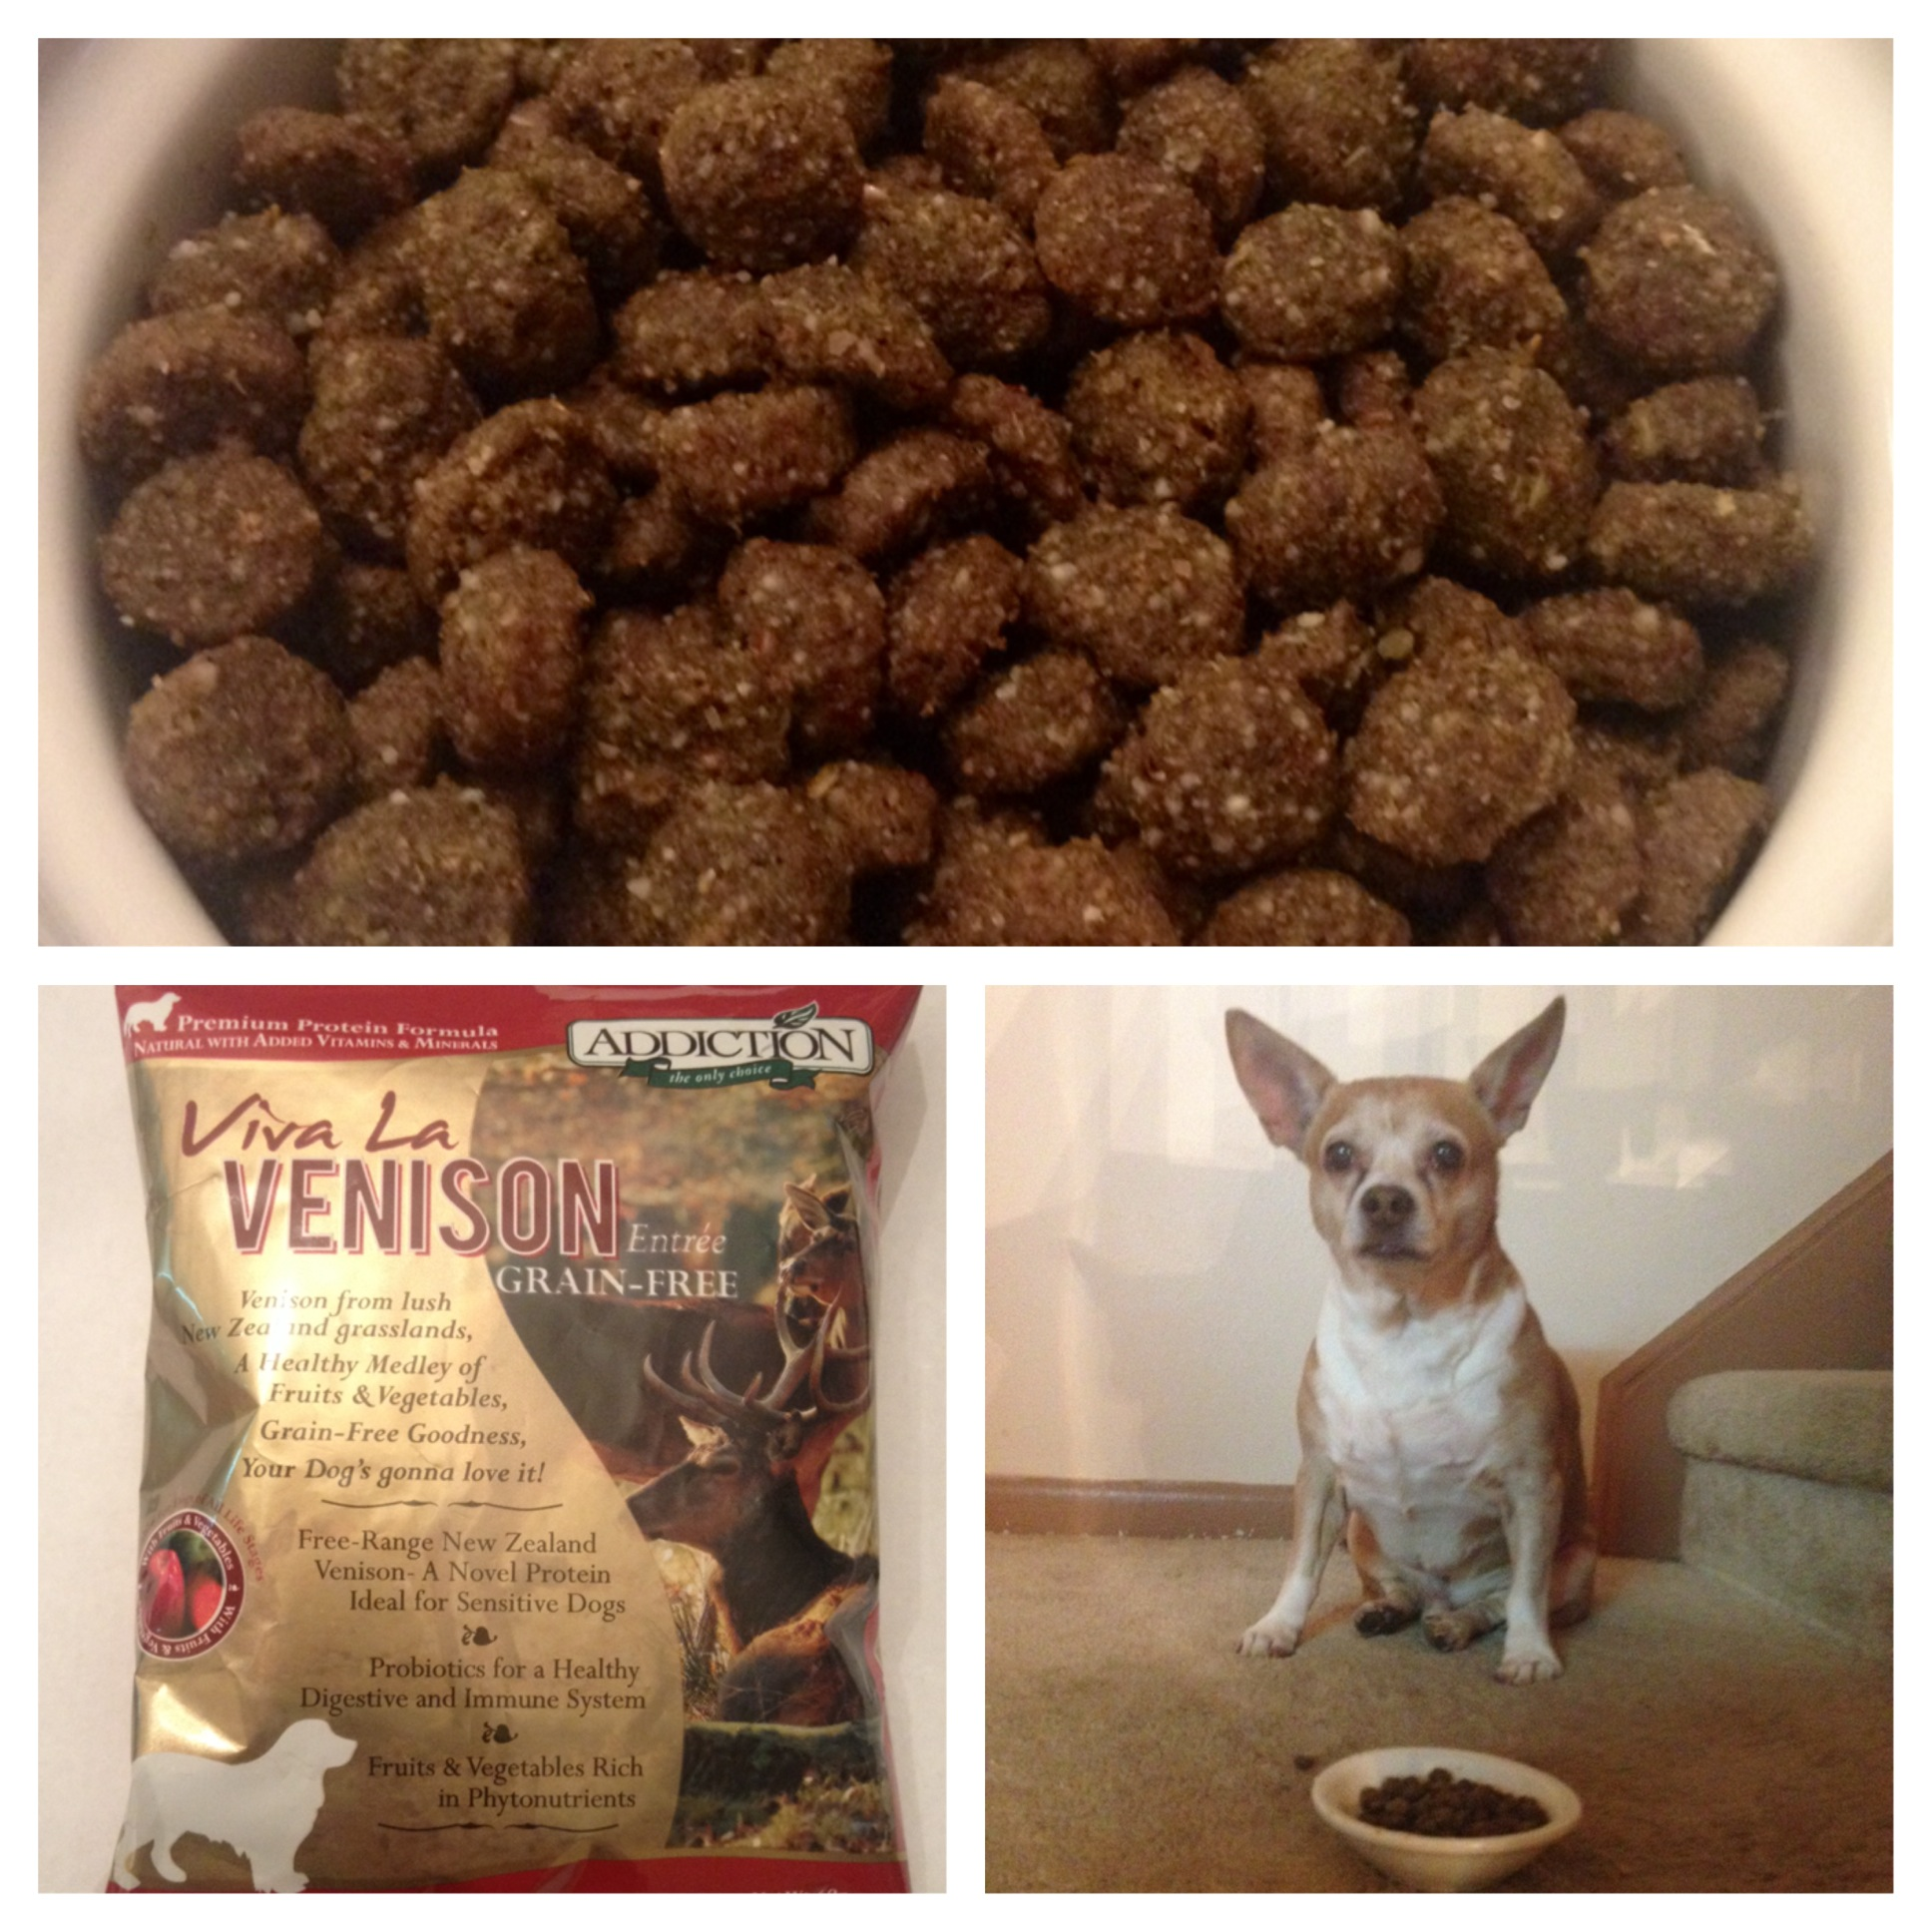 My Wonderful Experience With Addiction Pet Food